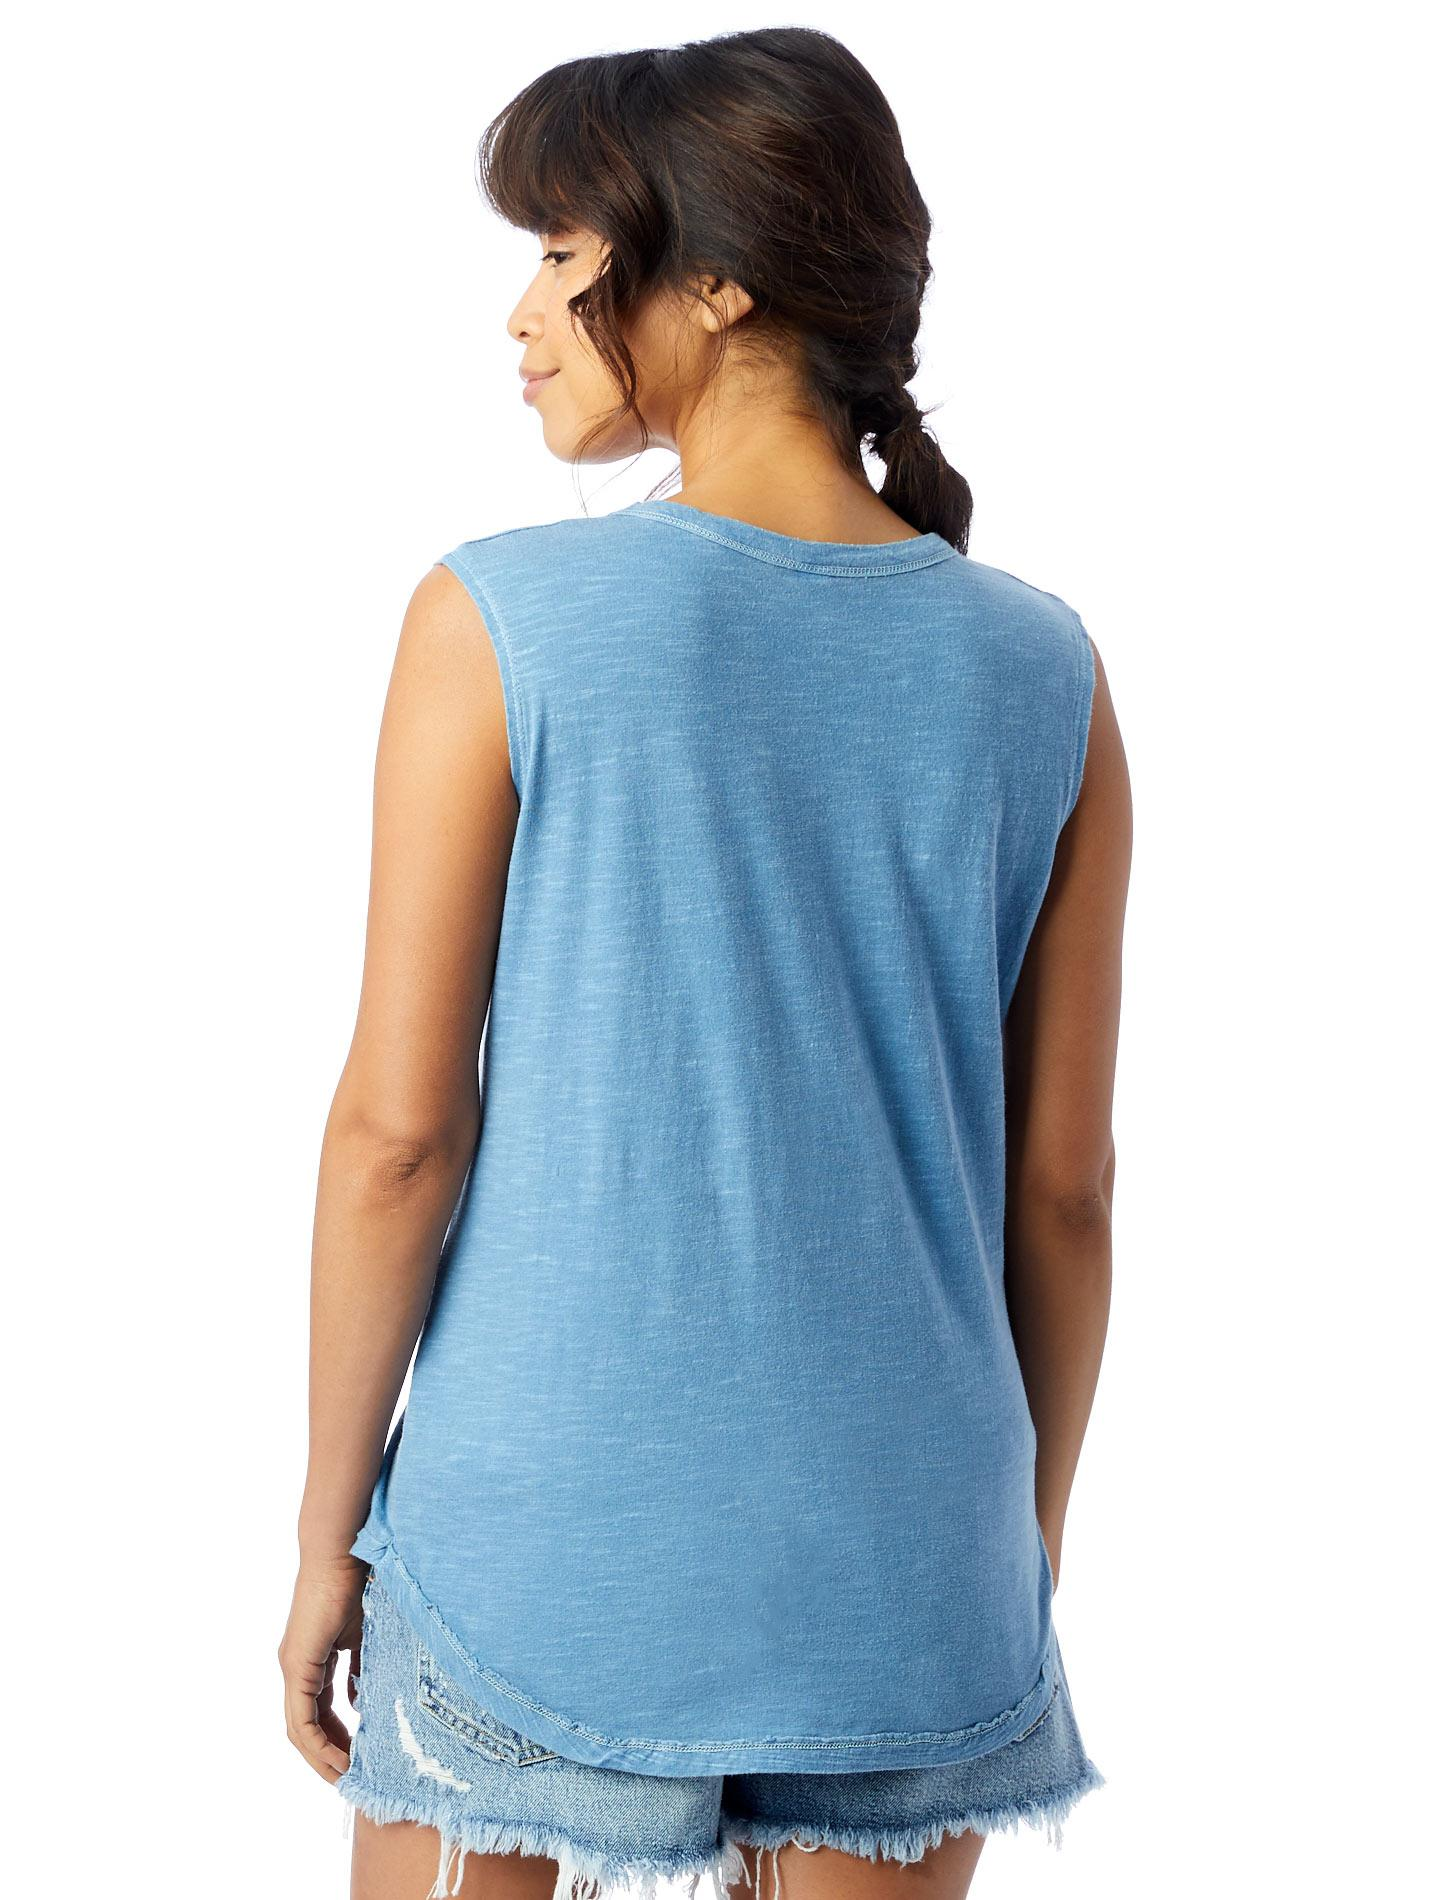 5eb81926cdfe99 ... Inside Out Shadow Wash Garment Dyed Slub Sleeveless T-shirt -. View  fullscreen